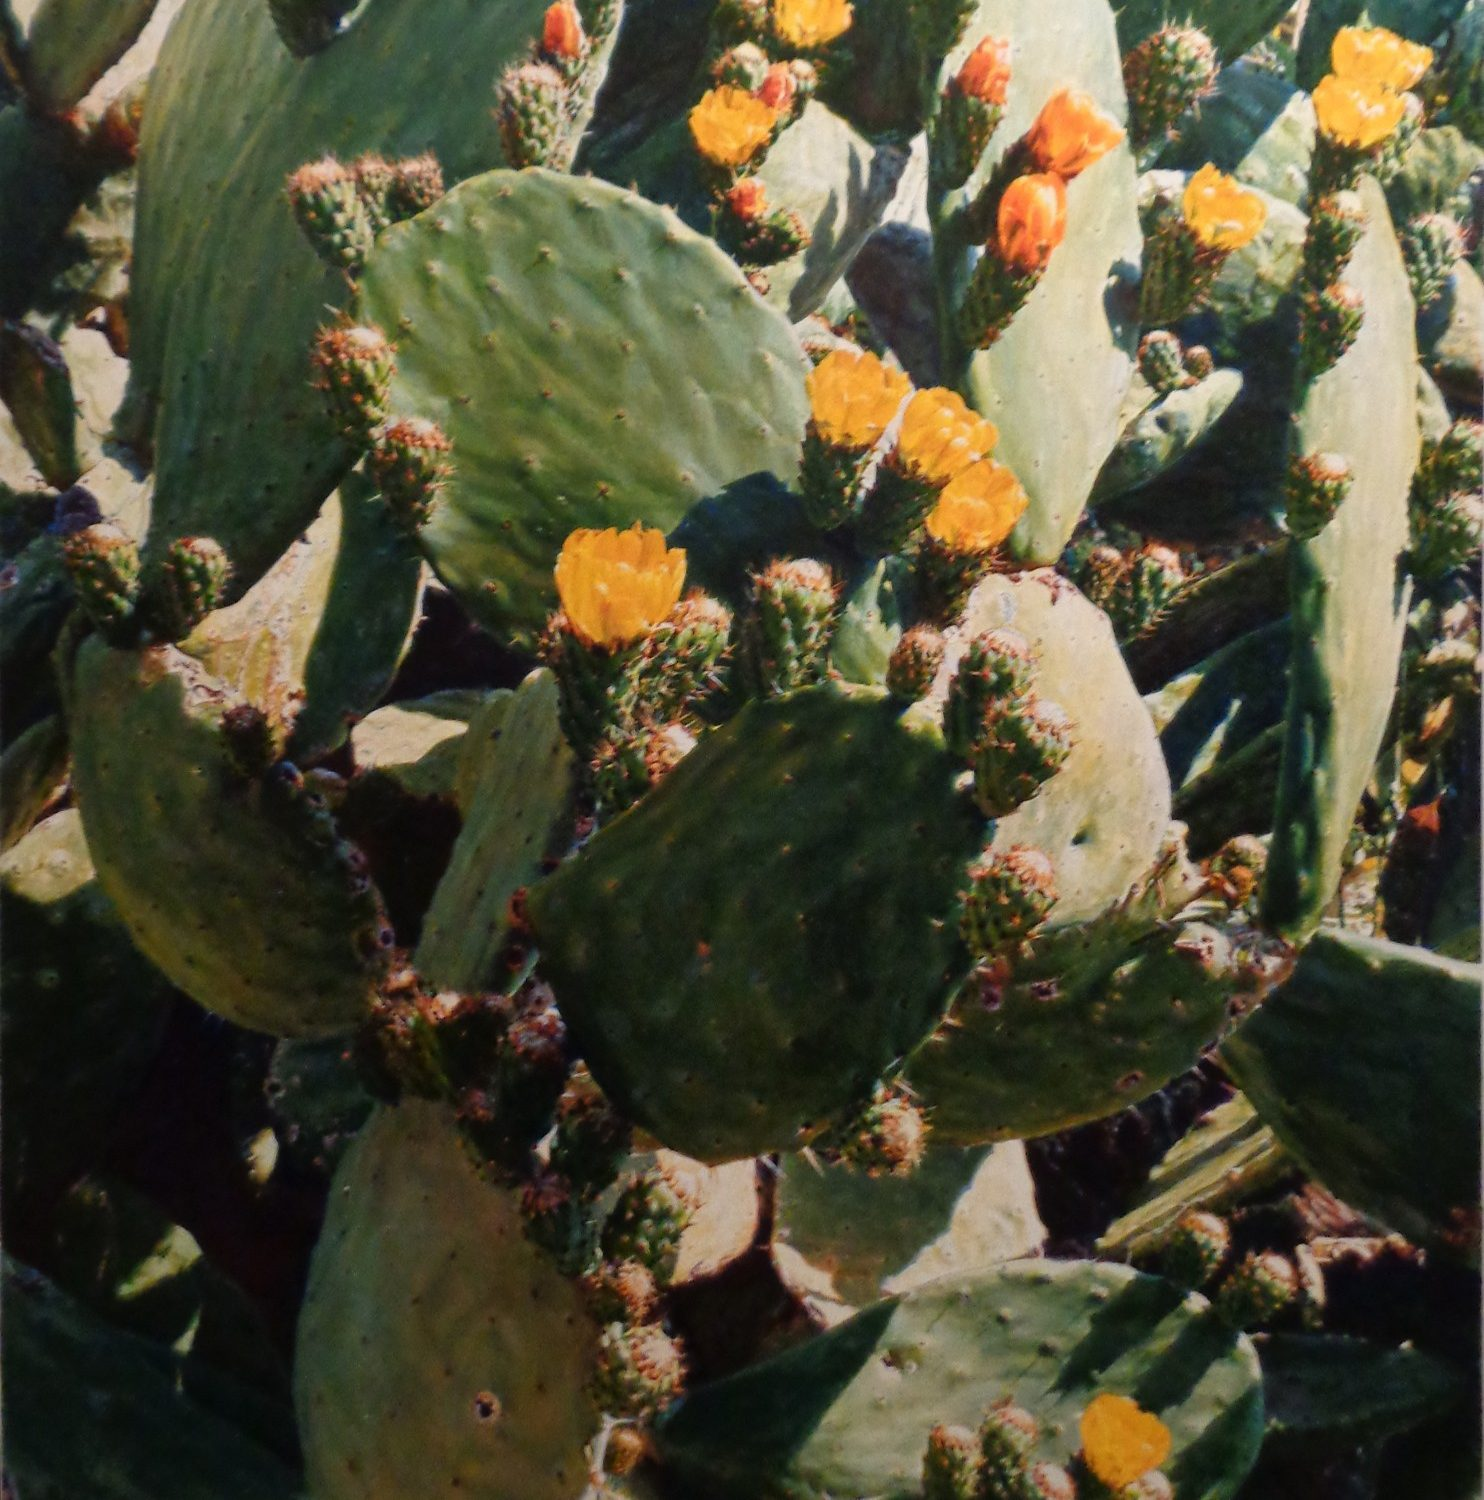 "Cactus - 28"" x 21"" - Oil on Canvas - Kurt Ard"